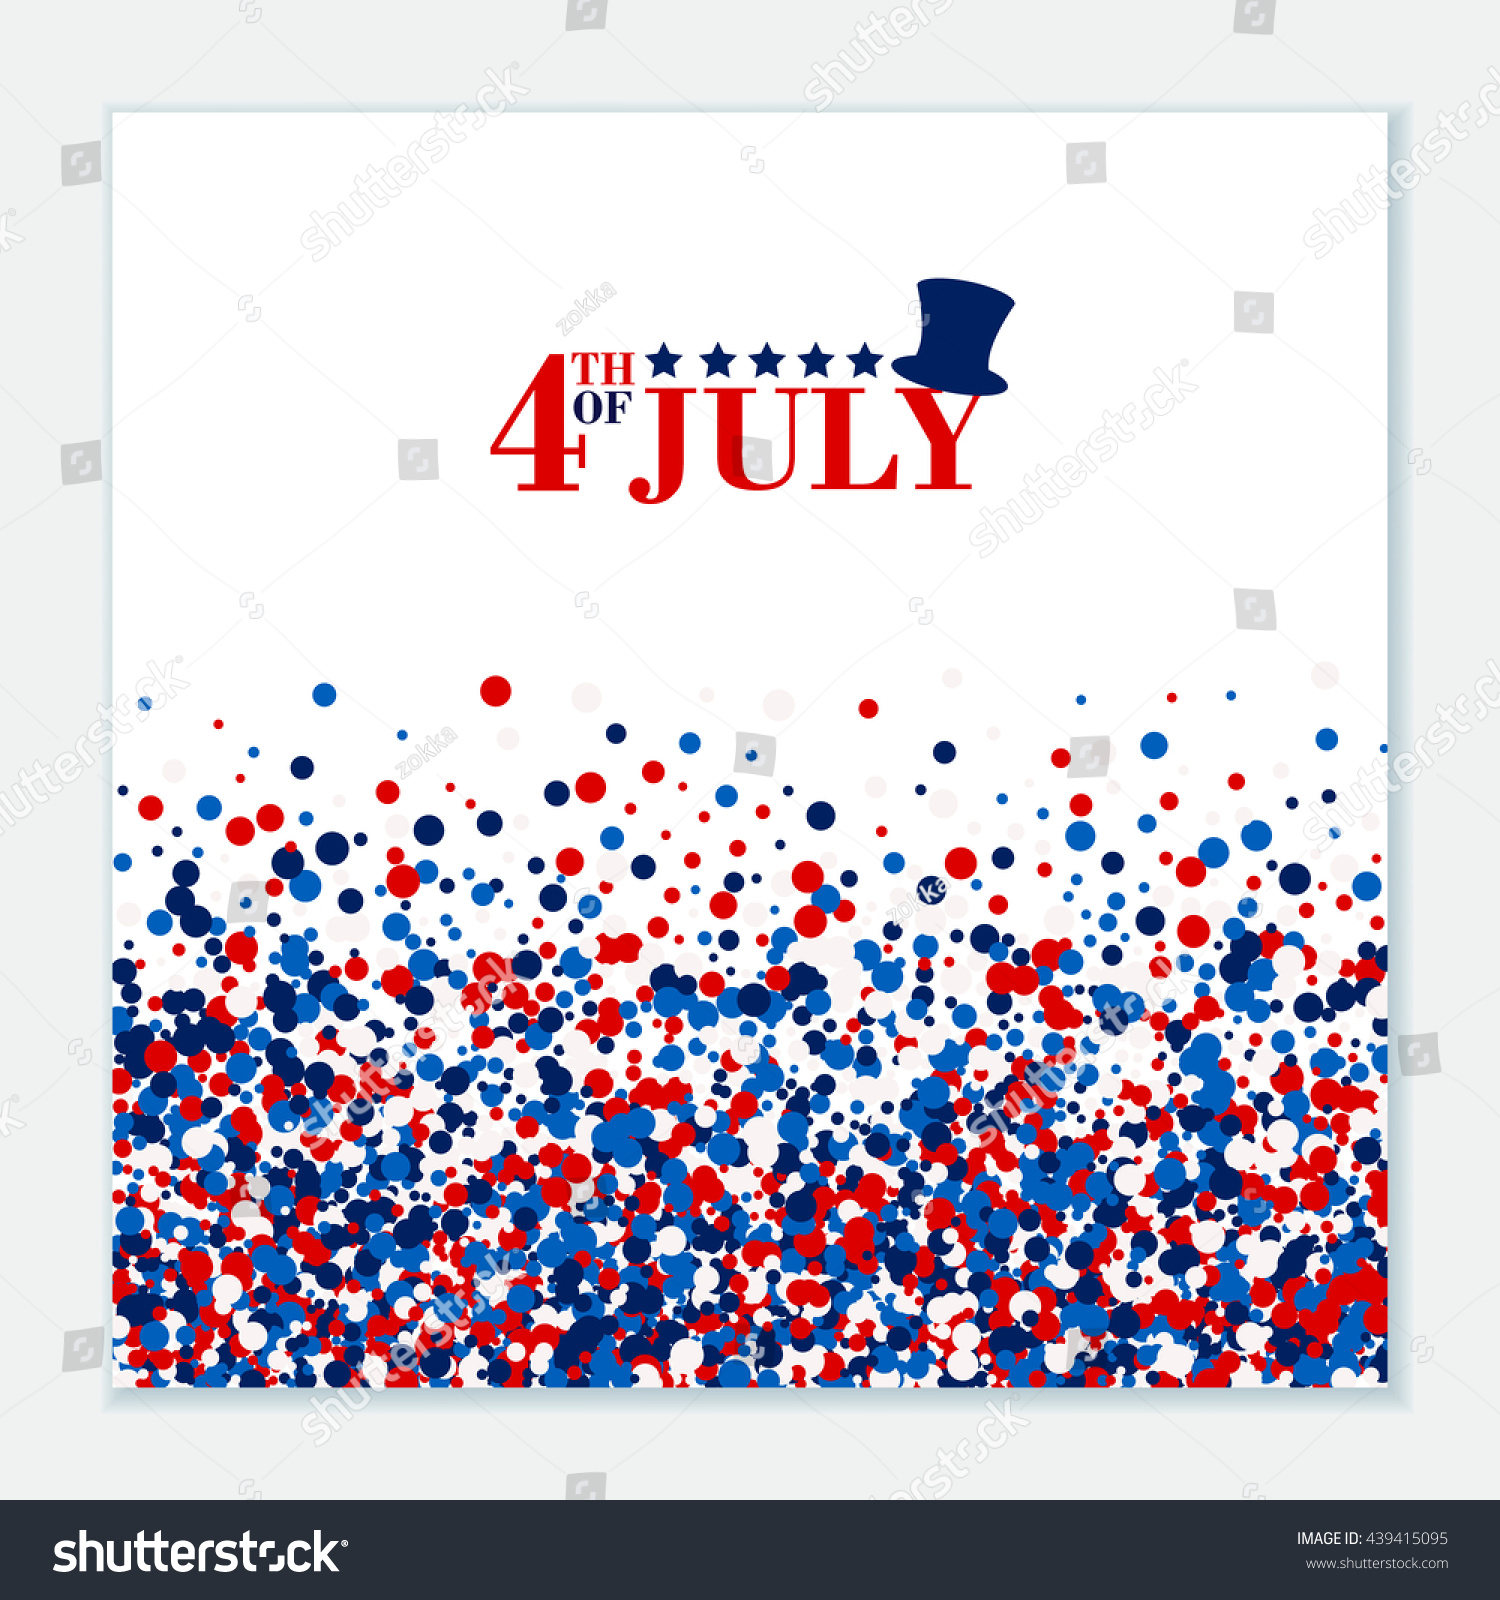 4th july festive greeting card top stock vector 439415095 shutterstock 4th of july festive greeting card with top hat stars american happy independence day kristyandbryce Images